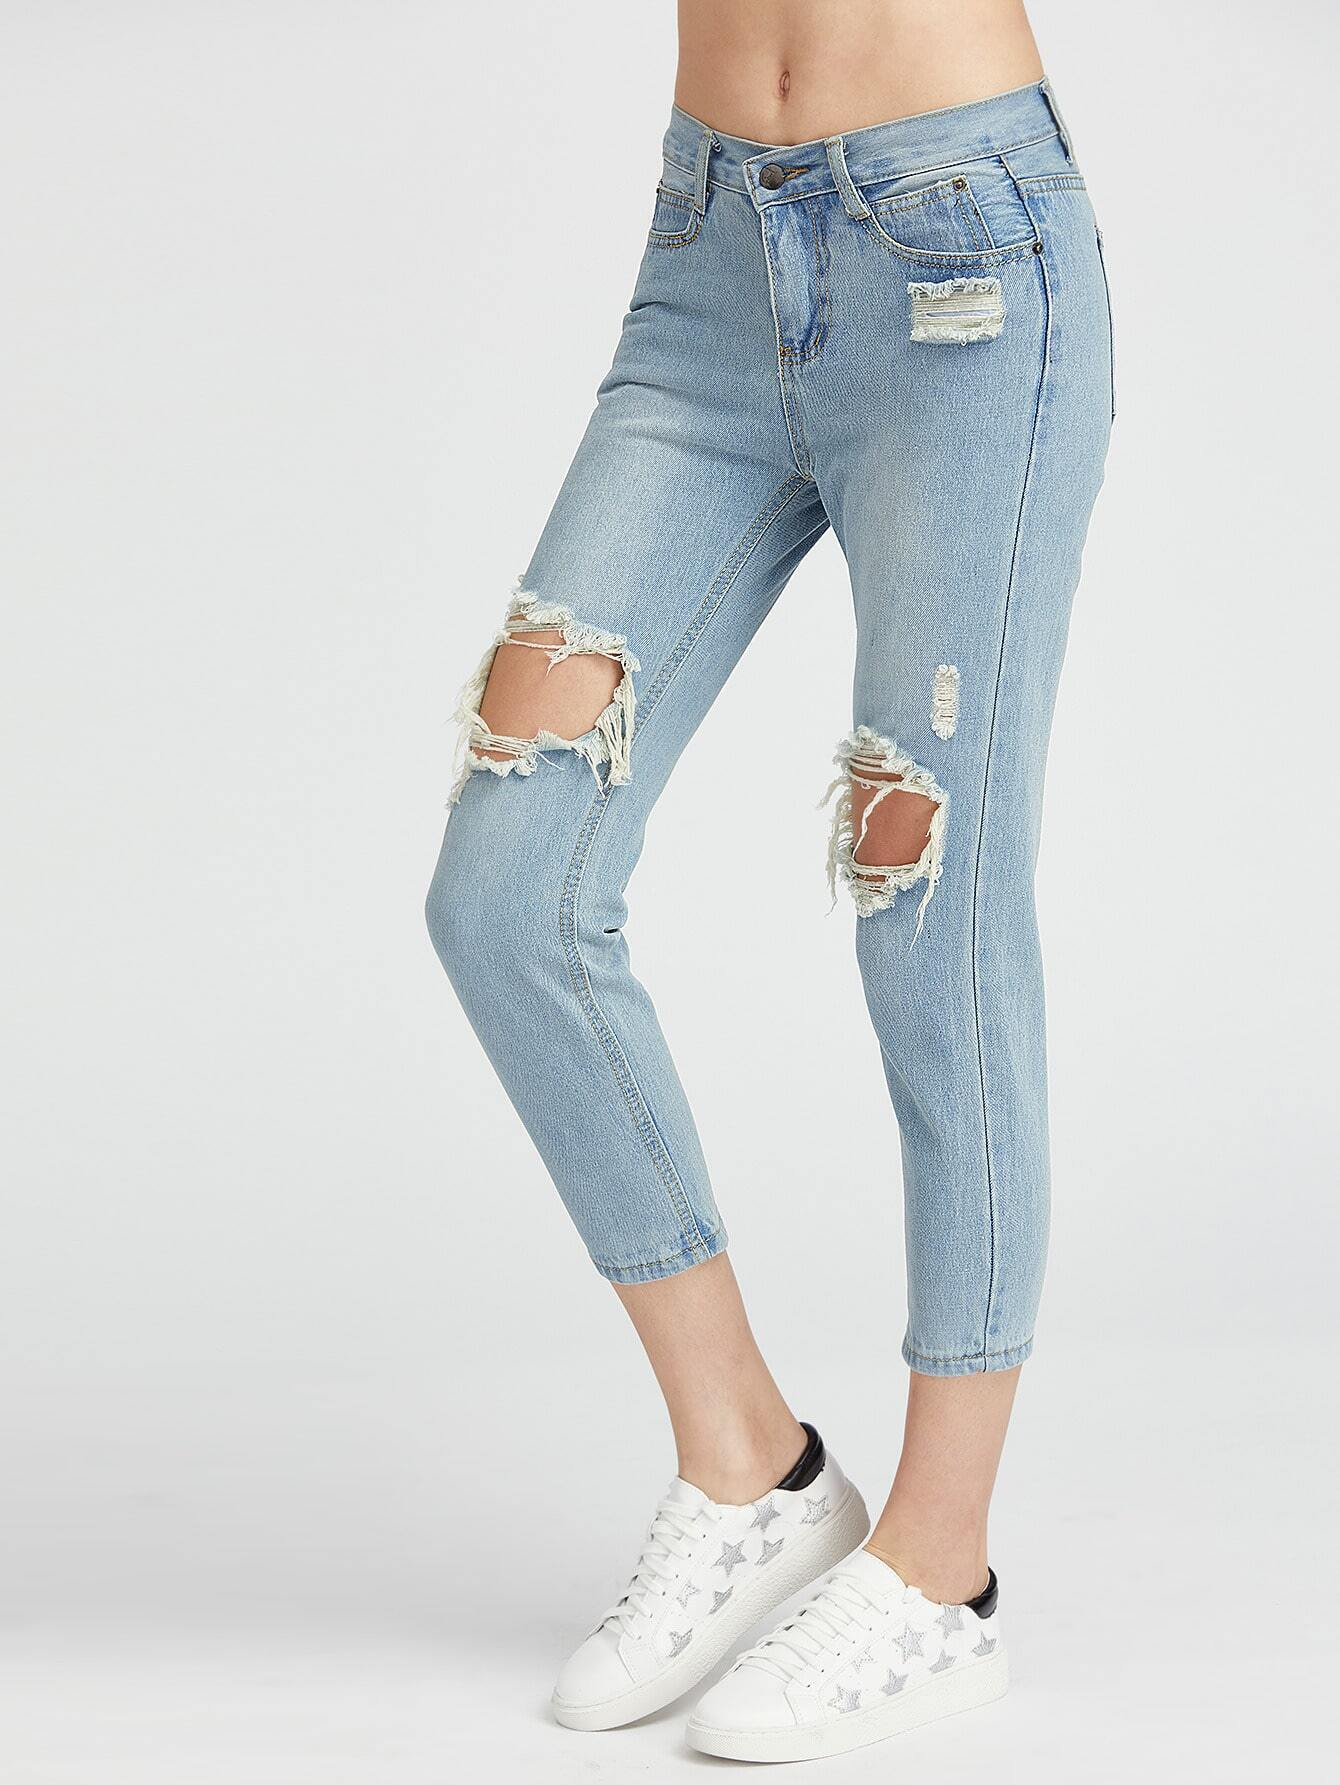 Destroy Washed Sheath Jeans